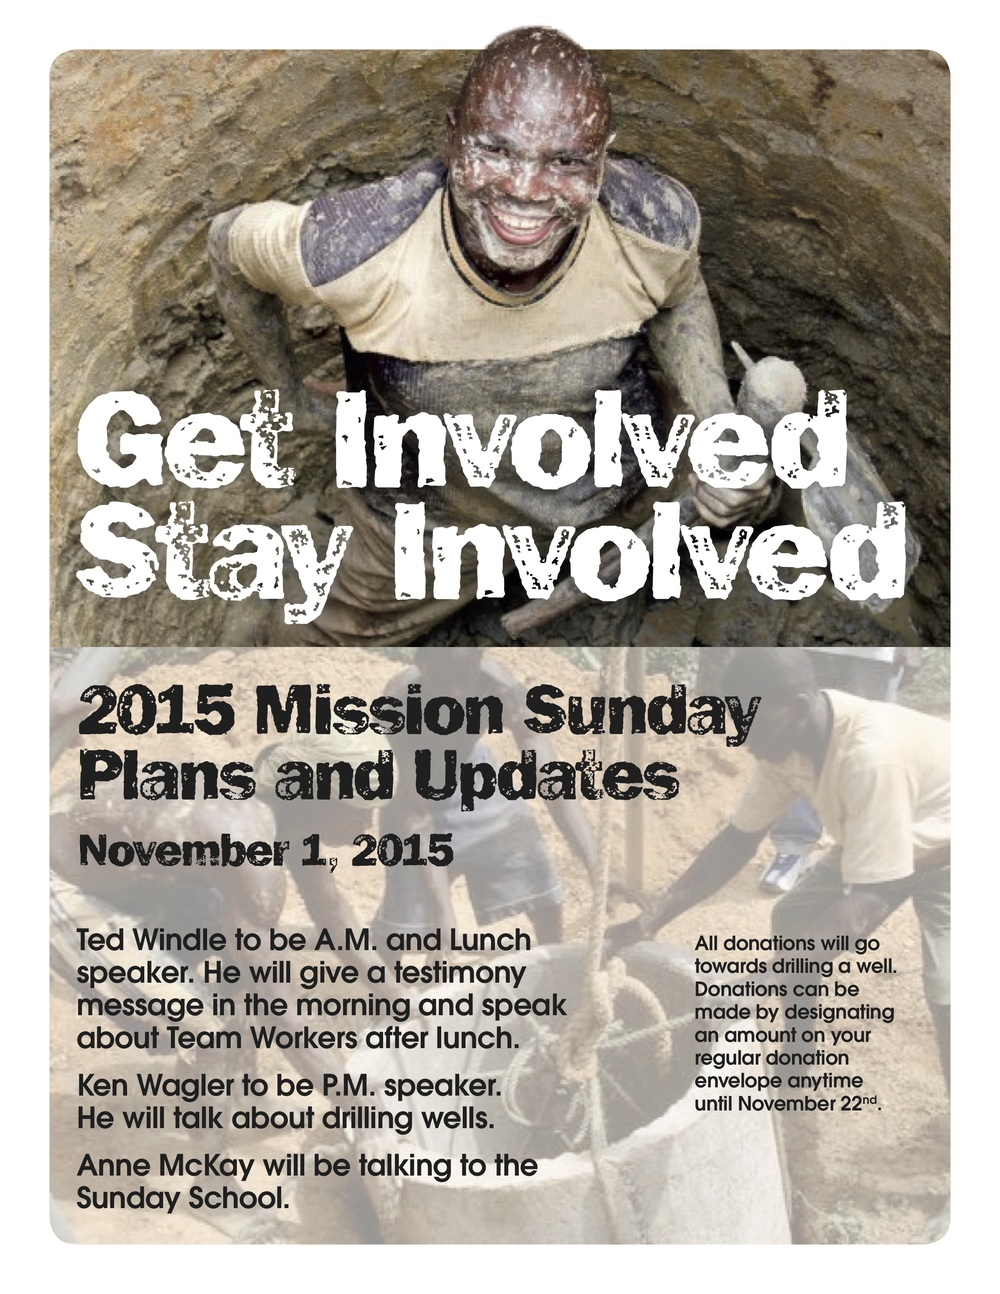 Missions Sunday 2015 Flyer.jpg